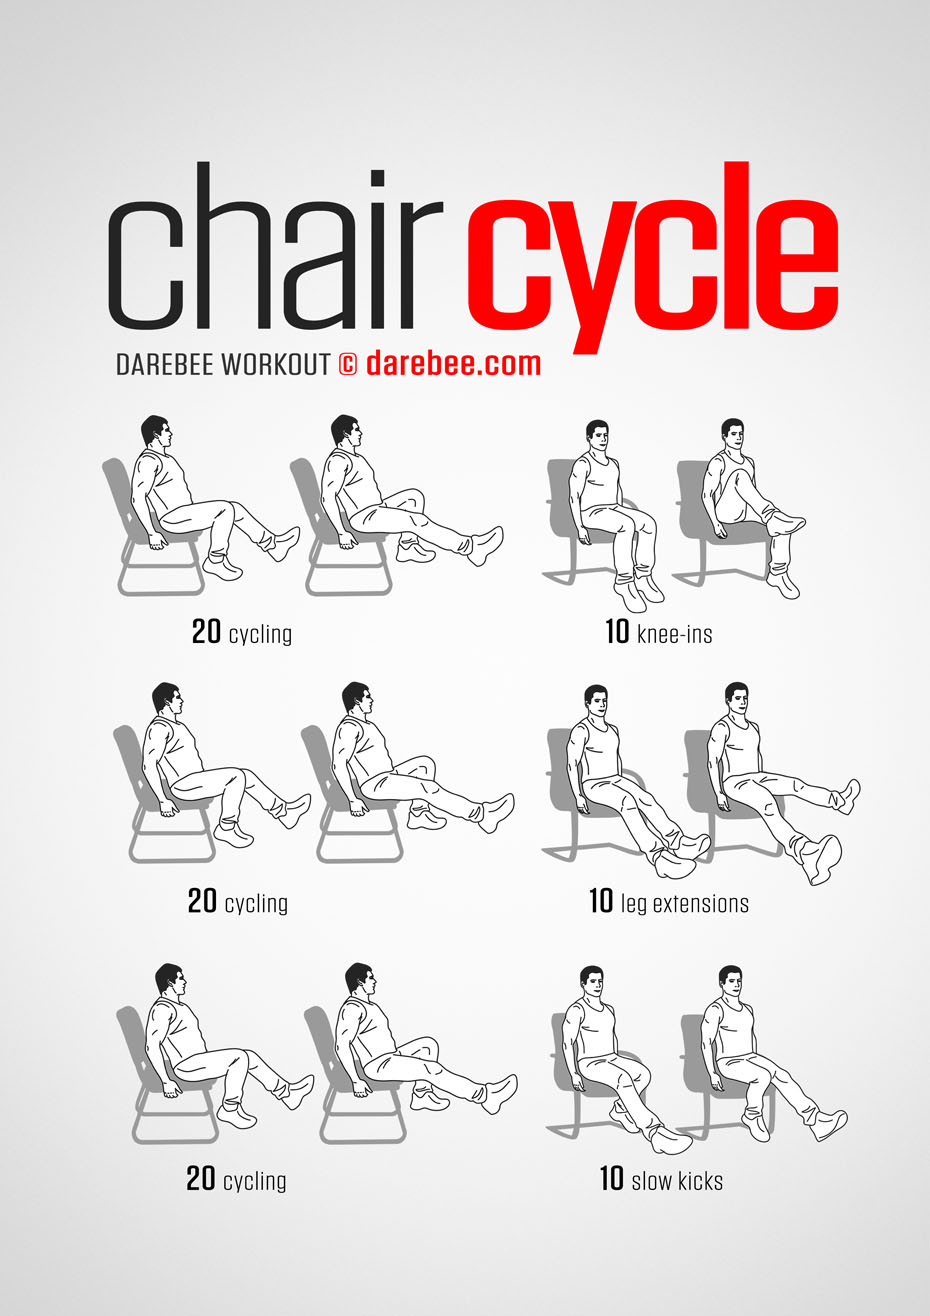 Sofa Workout Chair Cycle Workout